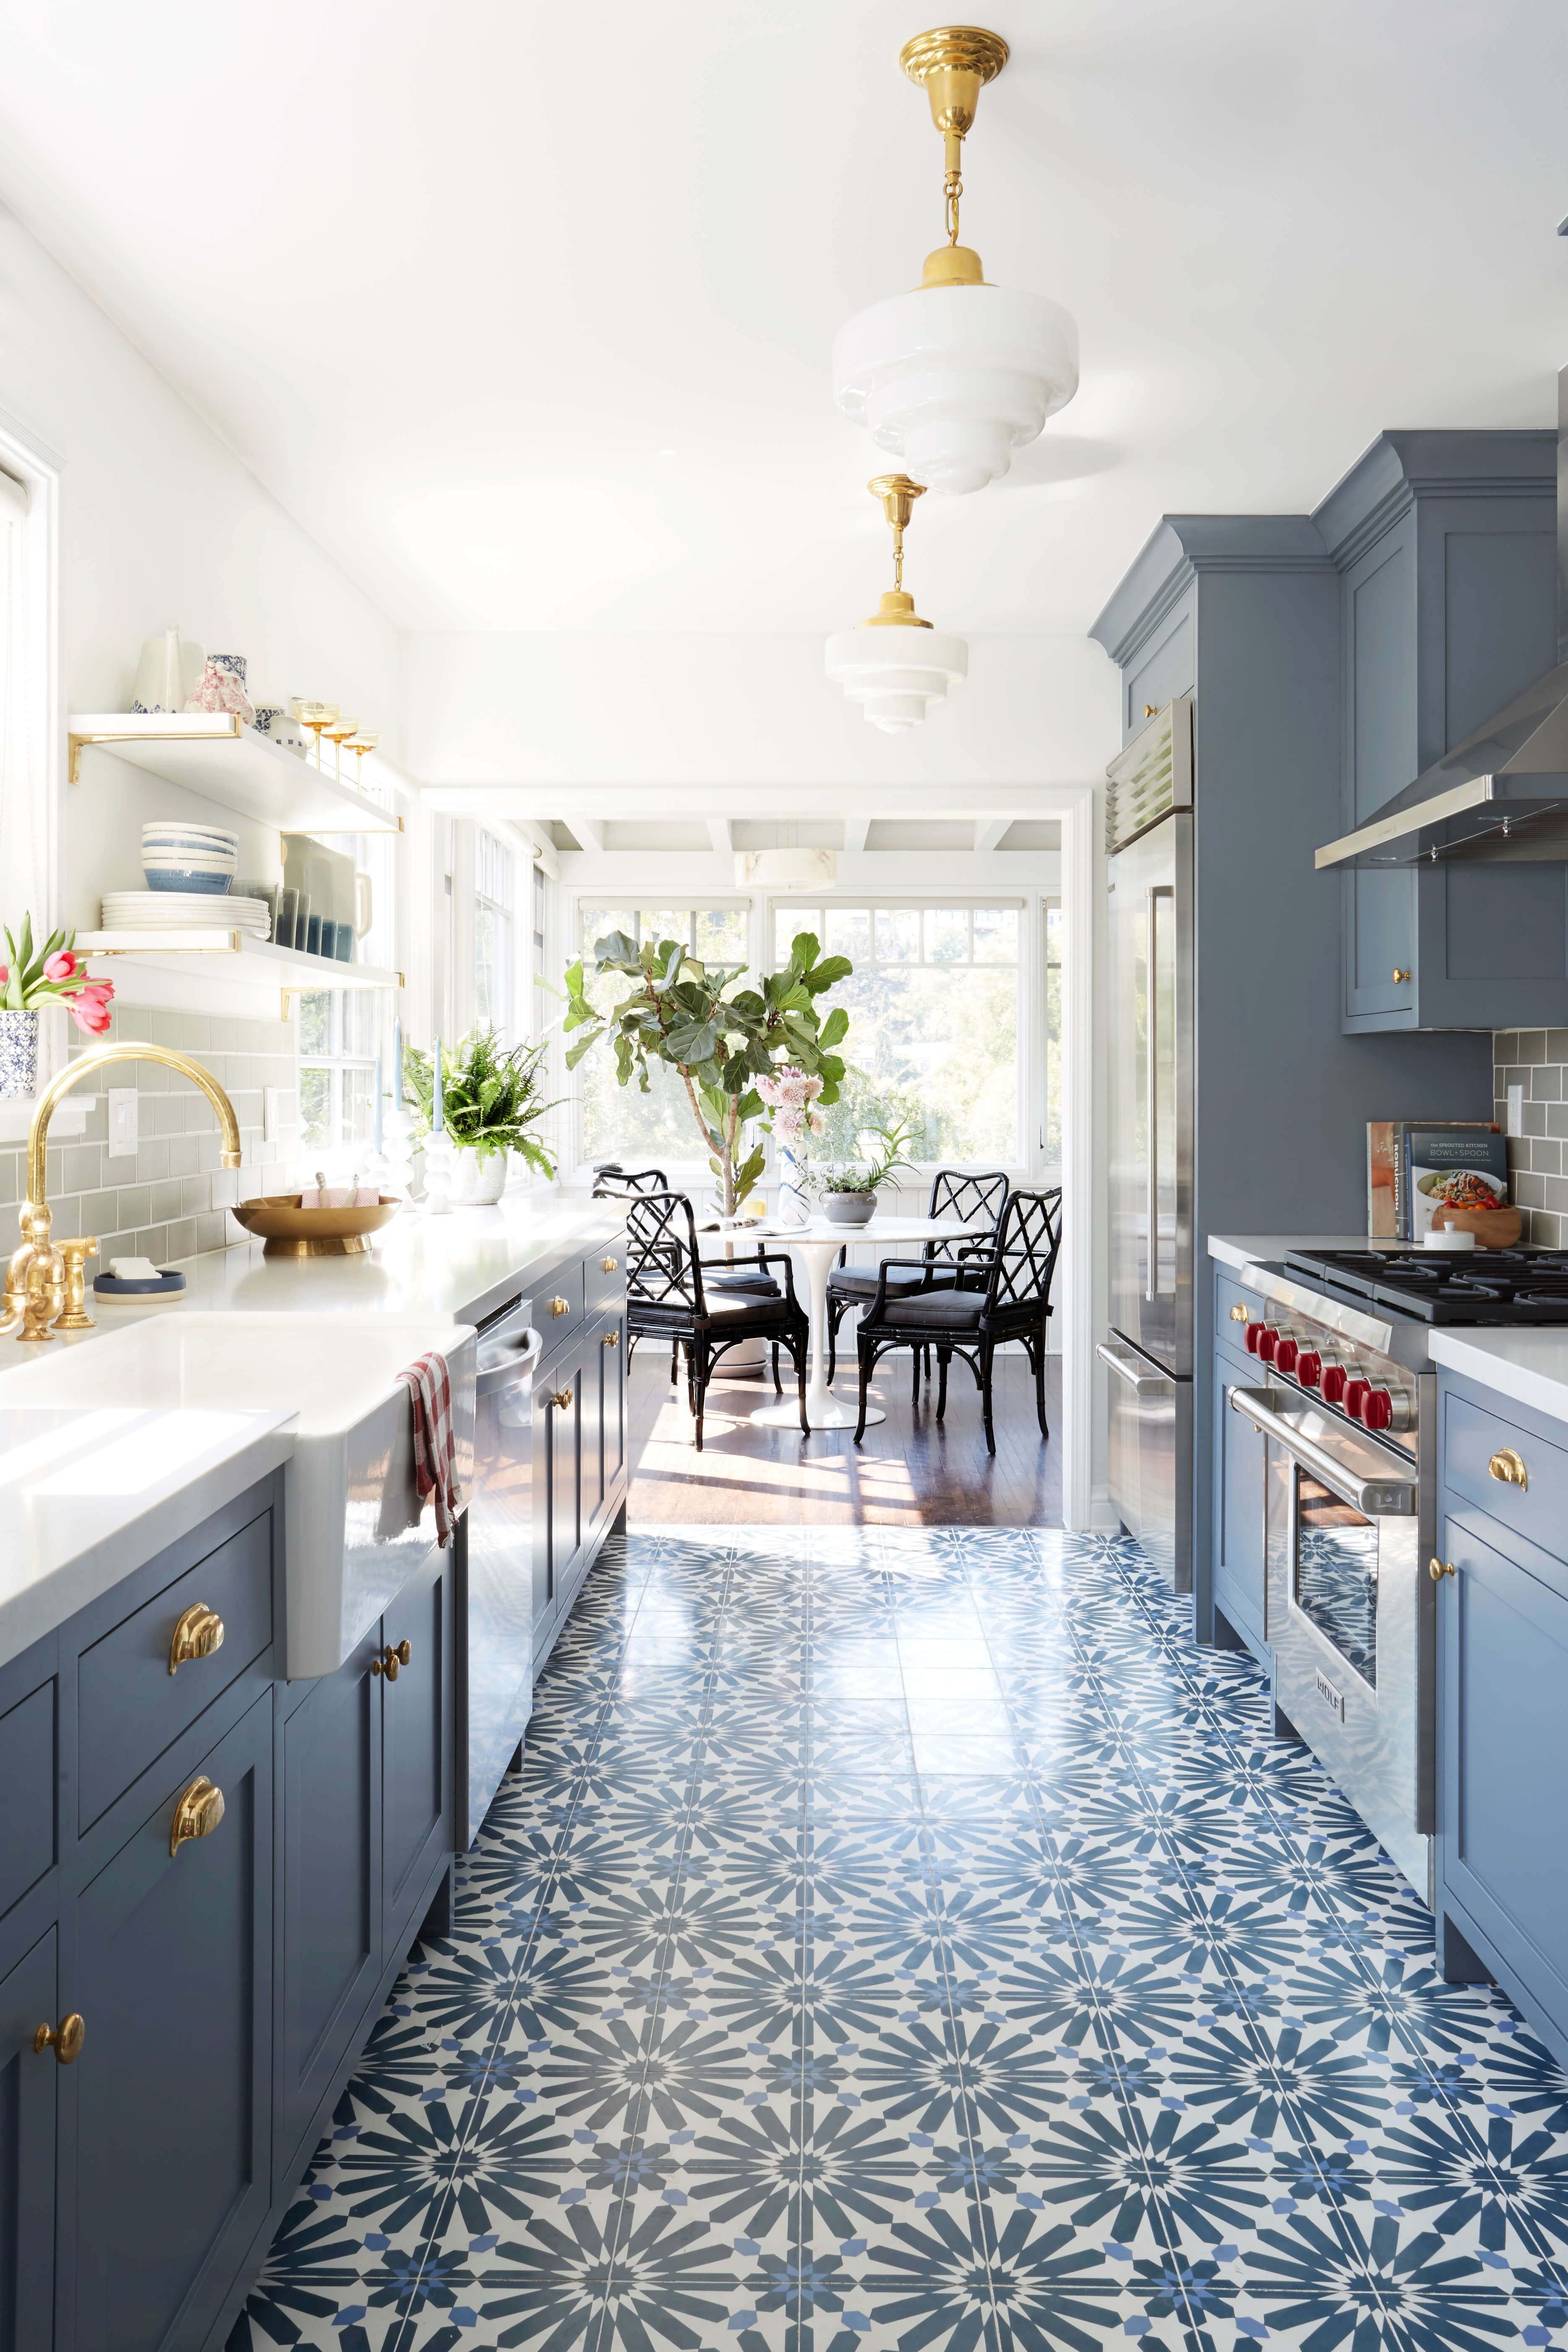 Hey there its ginny here with an intro to a very fun before and after kitchen renovation project for the lorey family for those who have read the blog